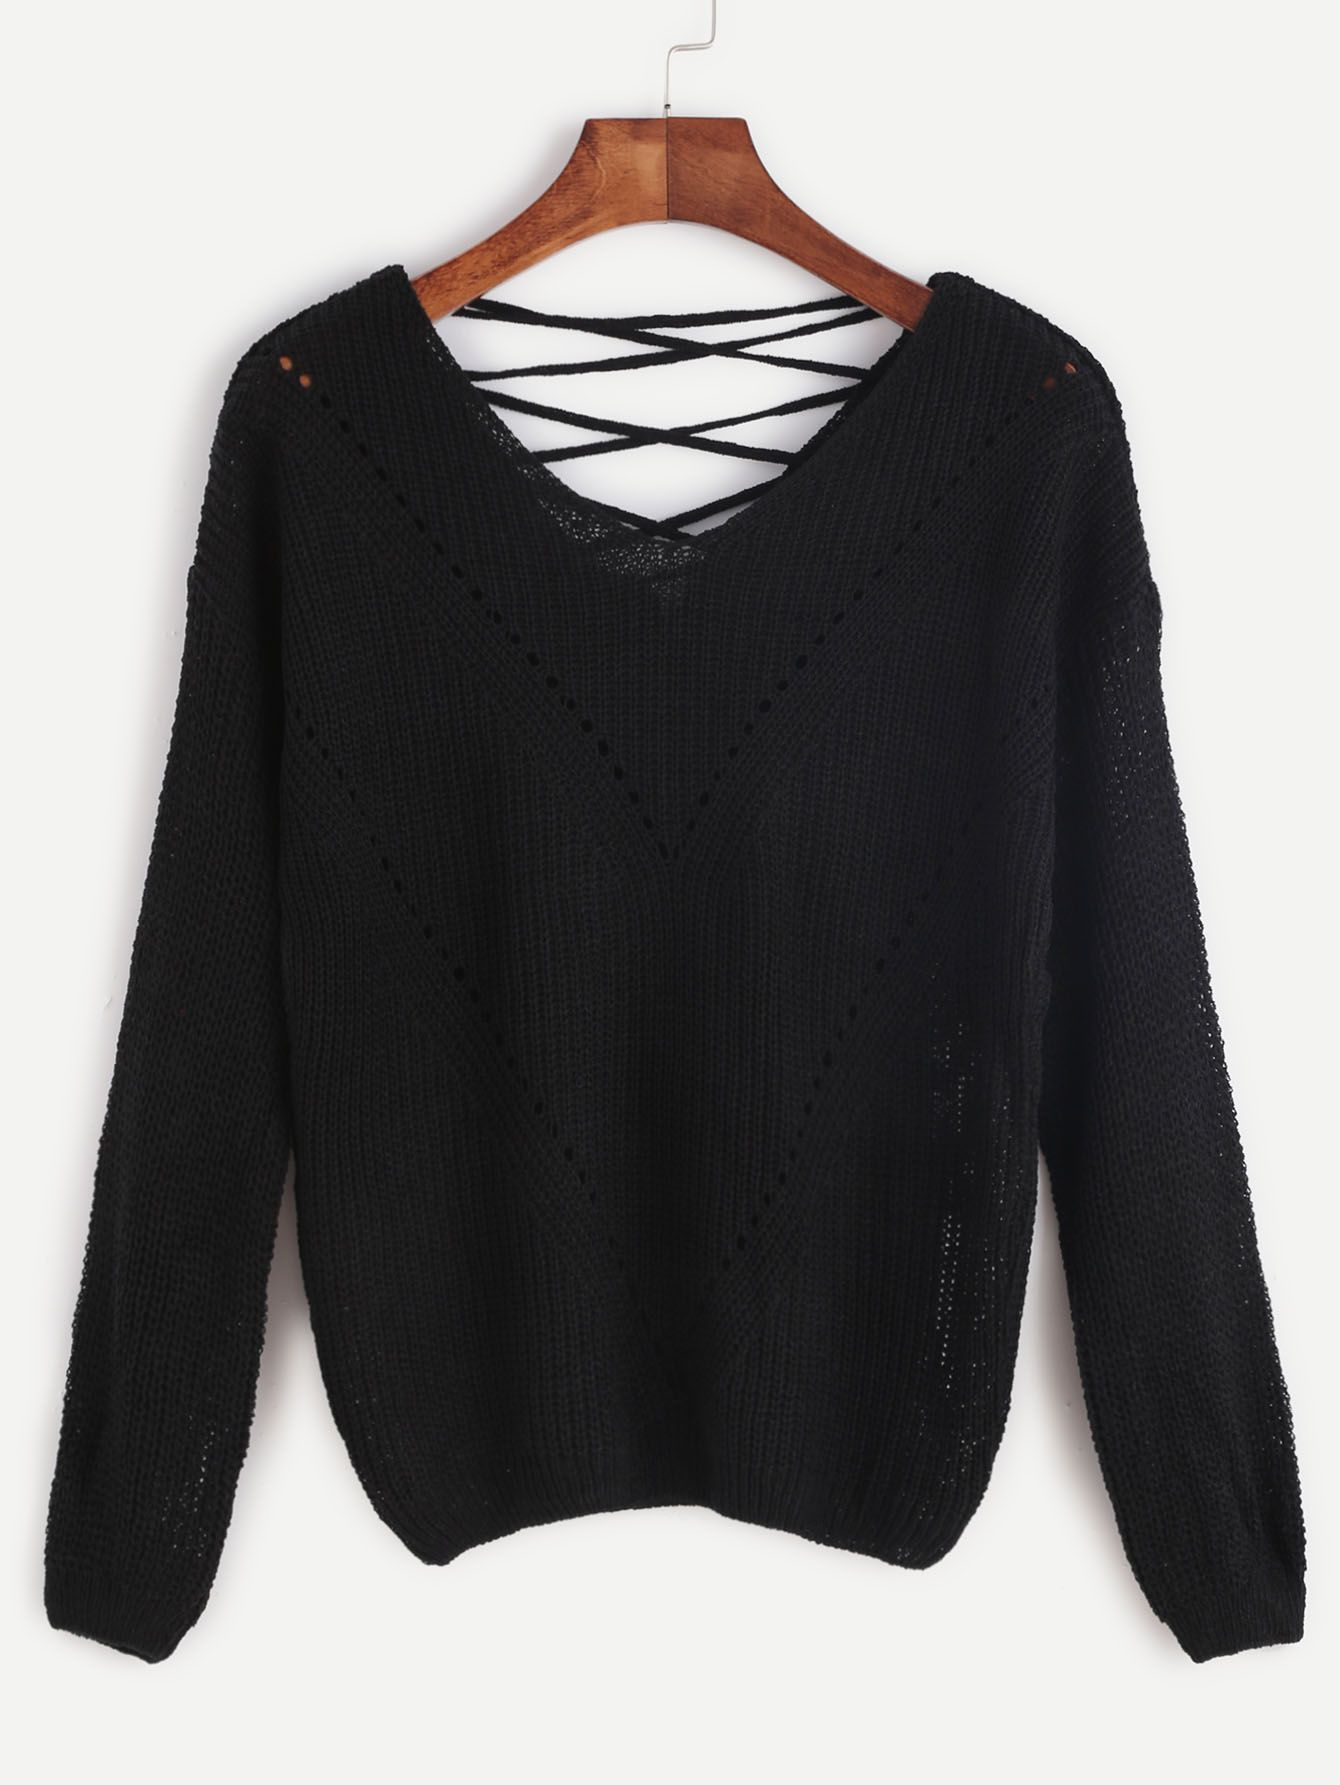 d242c04488f6e Shop Black Lace Up V Back Eyelet Chevron Knit Sweater online. SheIn offers Black  Lace Up V Back Eyelet Chevron Knit Sweater & more to fit your fashionable  ...